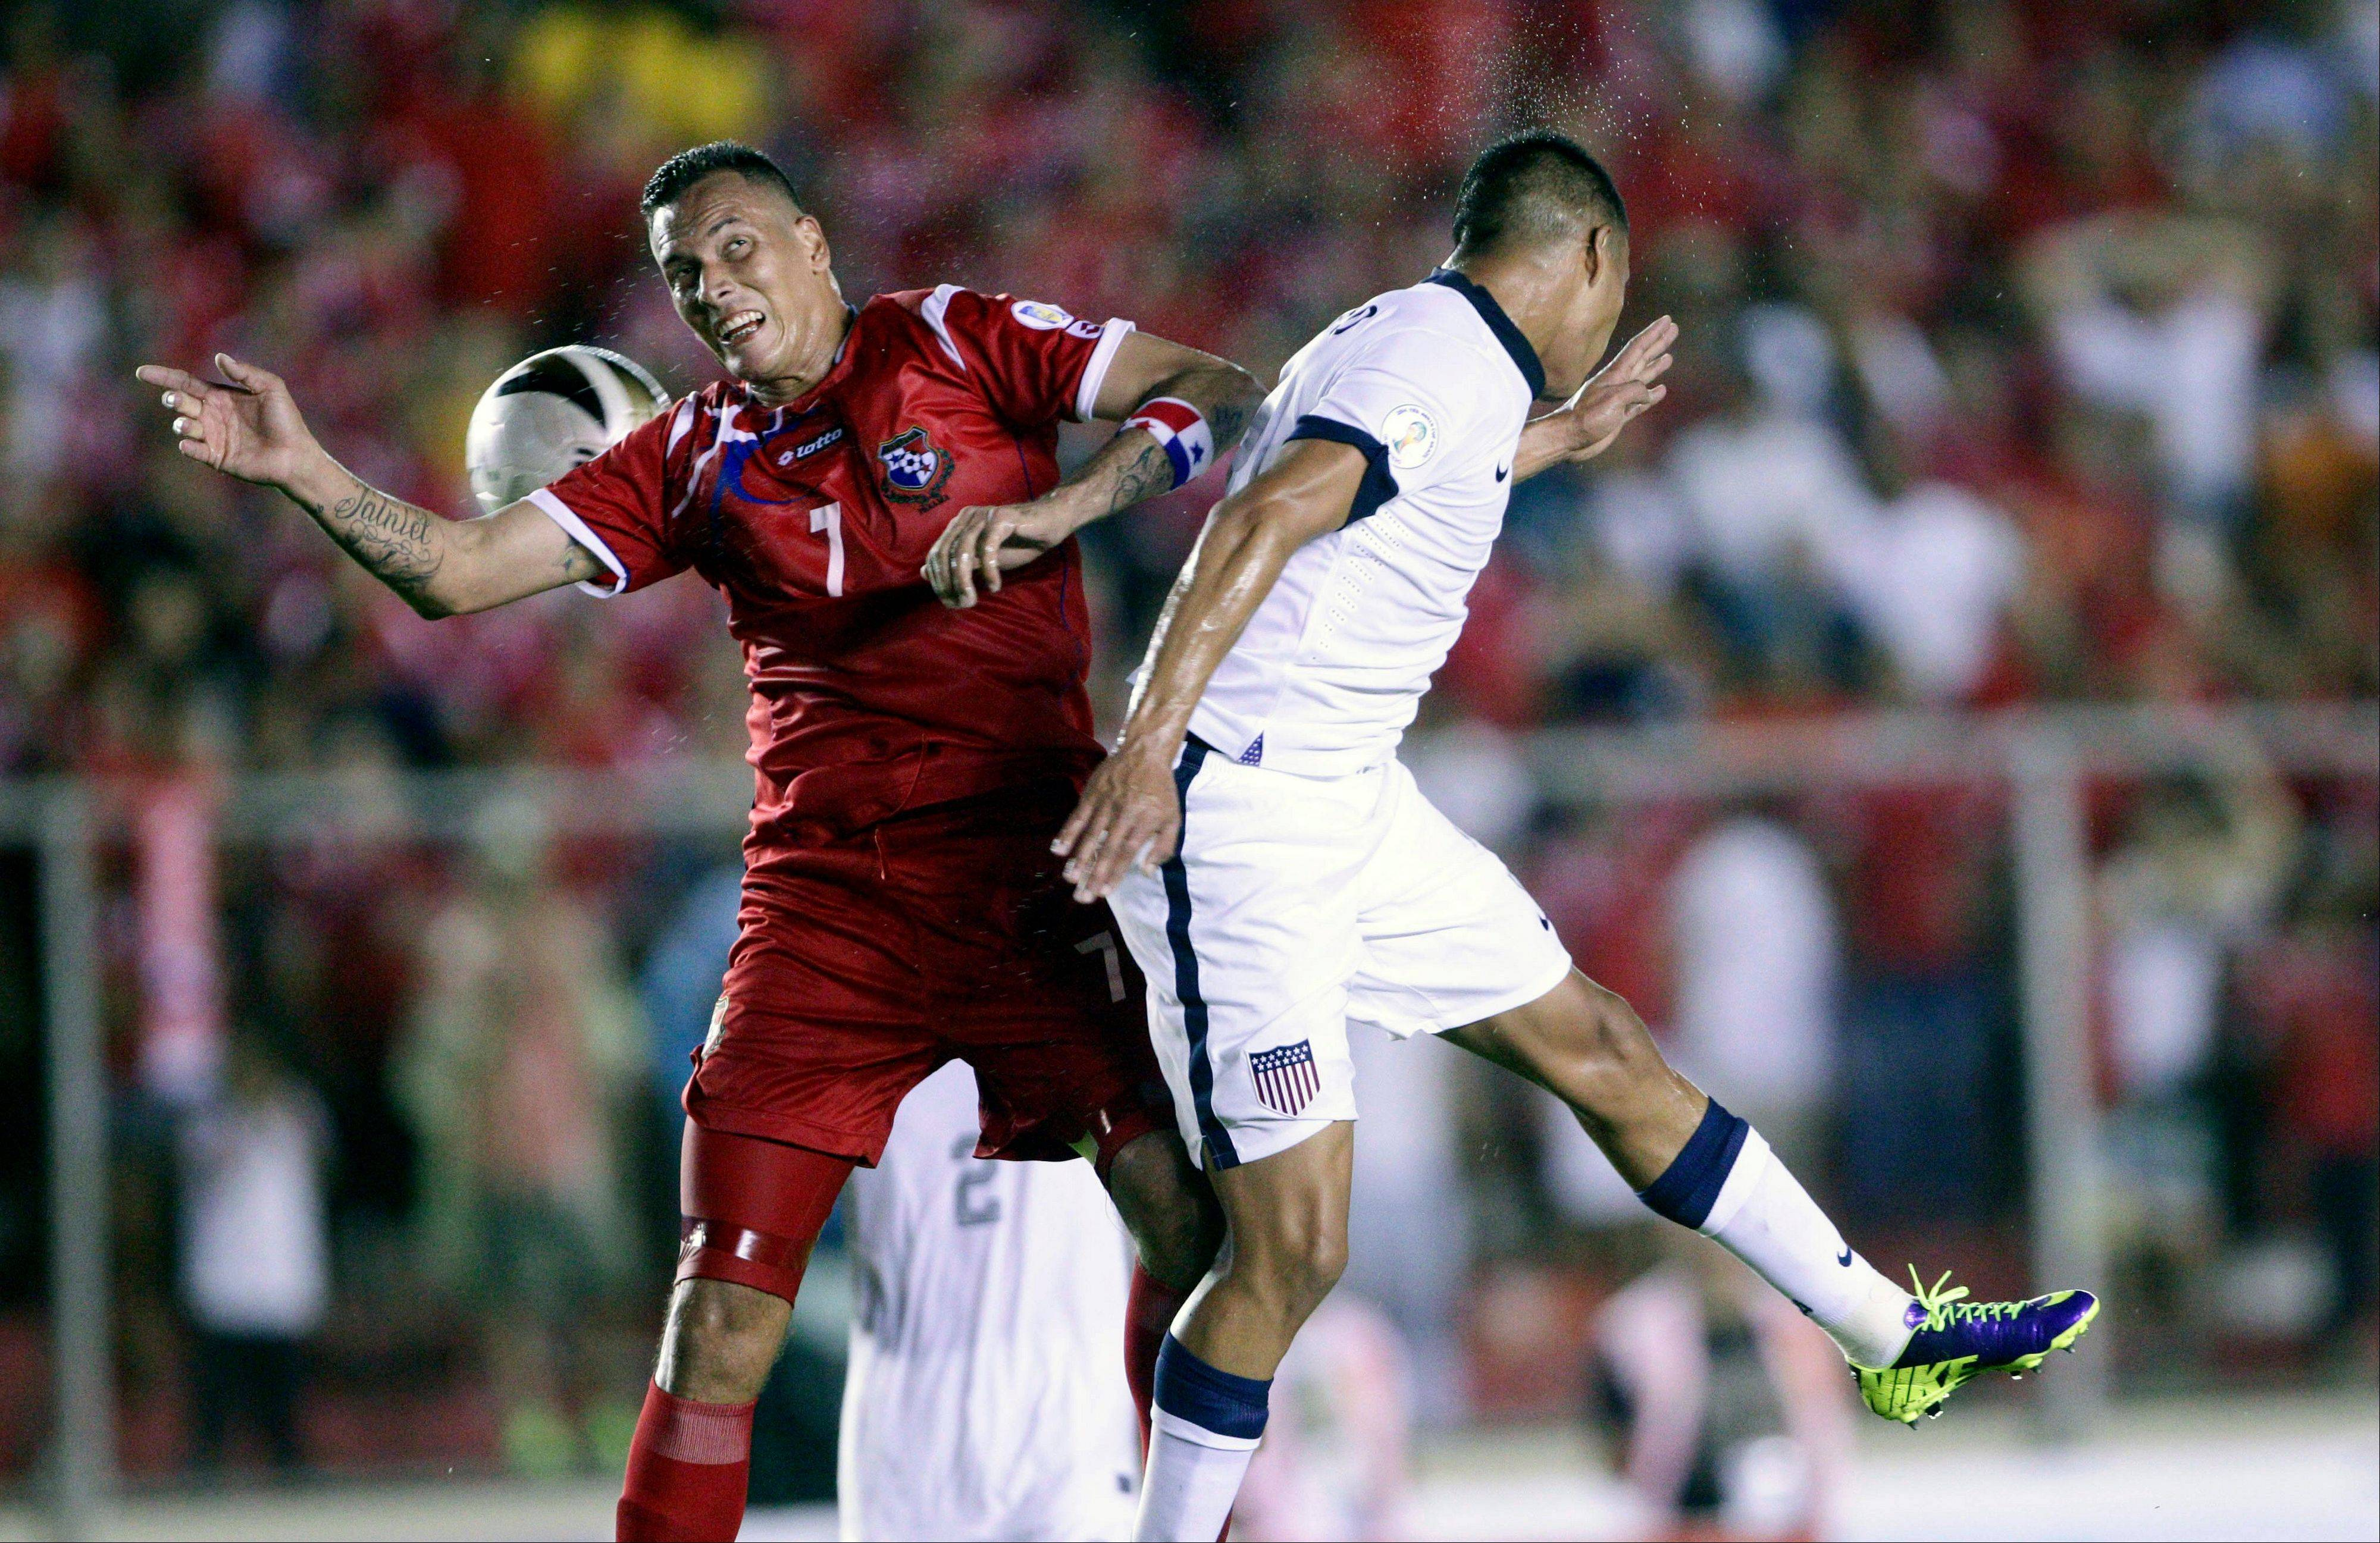 Team USA's Edgar Castillo, right, and Panama's Blas Perez go for a header Tuesday during a World Cup qualifying match in Panama City.